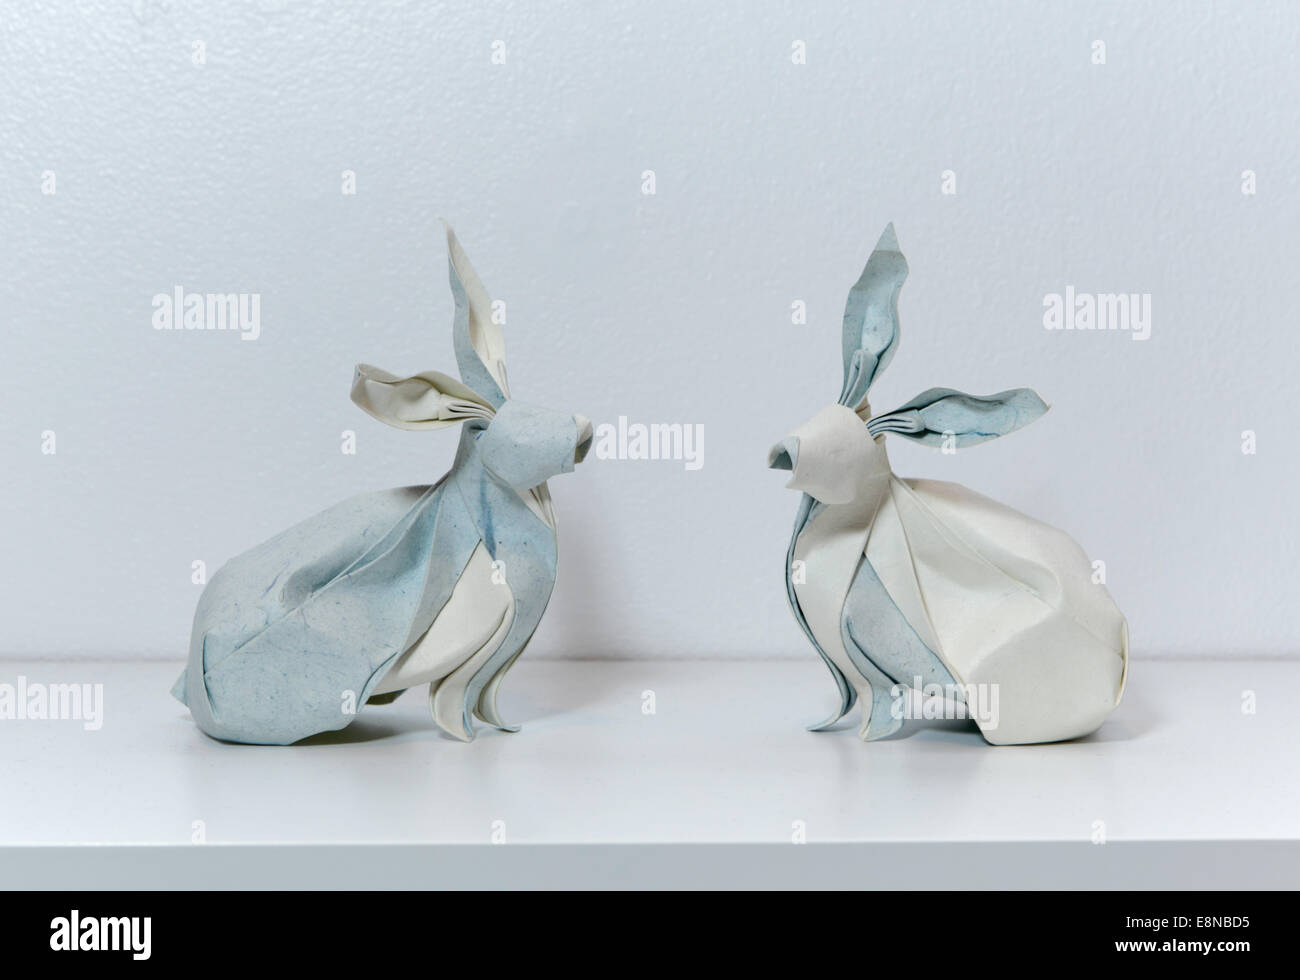 Twin origami rabbits designed and folded by Vietnamese origami artist, Nguyen Hung Cuong - Stock Image